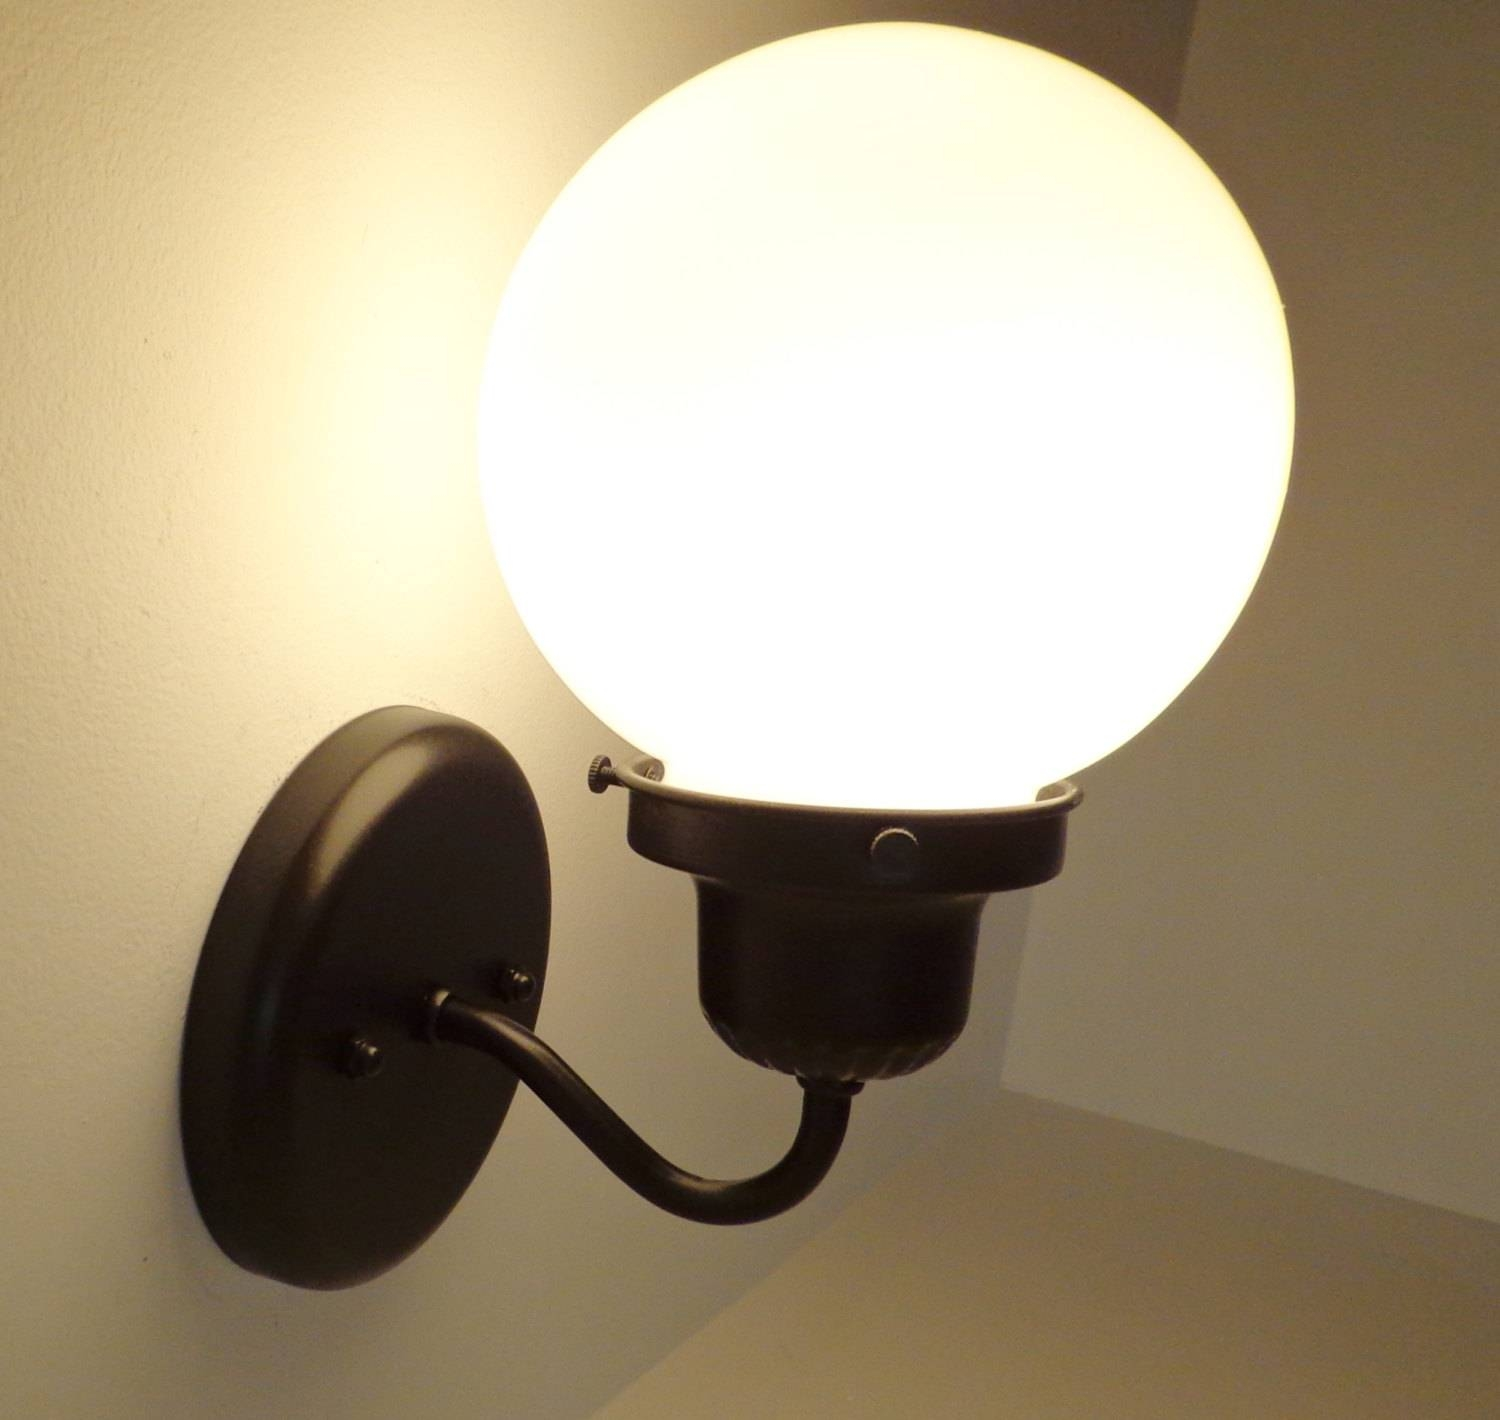 Milk Glass Globe Subway Sconce Light Fixture Wall Flush intended for Milk Glass Lights Fixtures (Image 8 of 15)